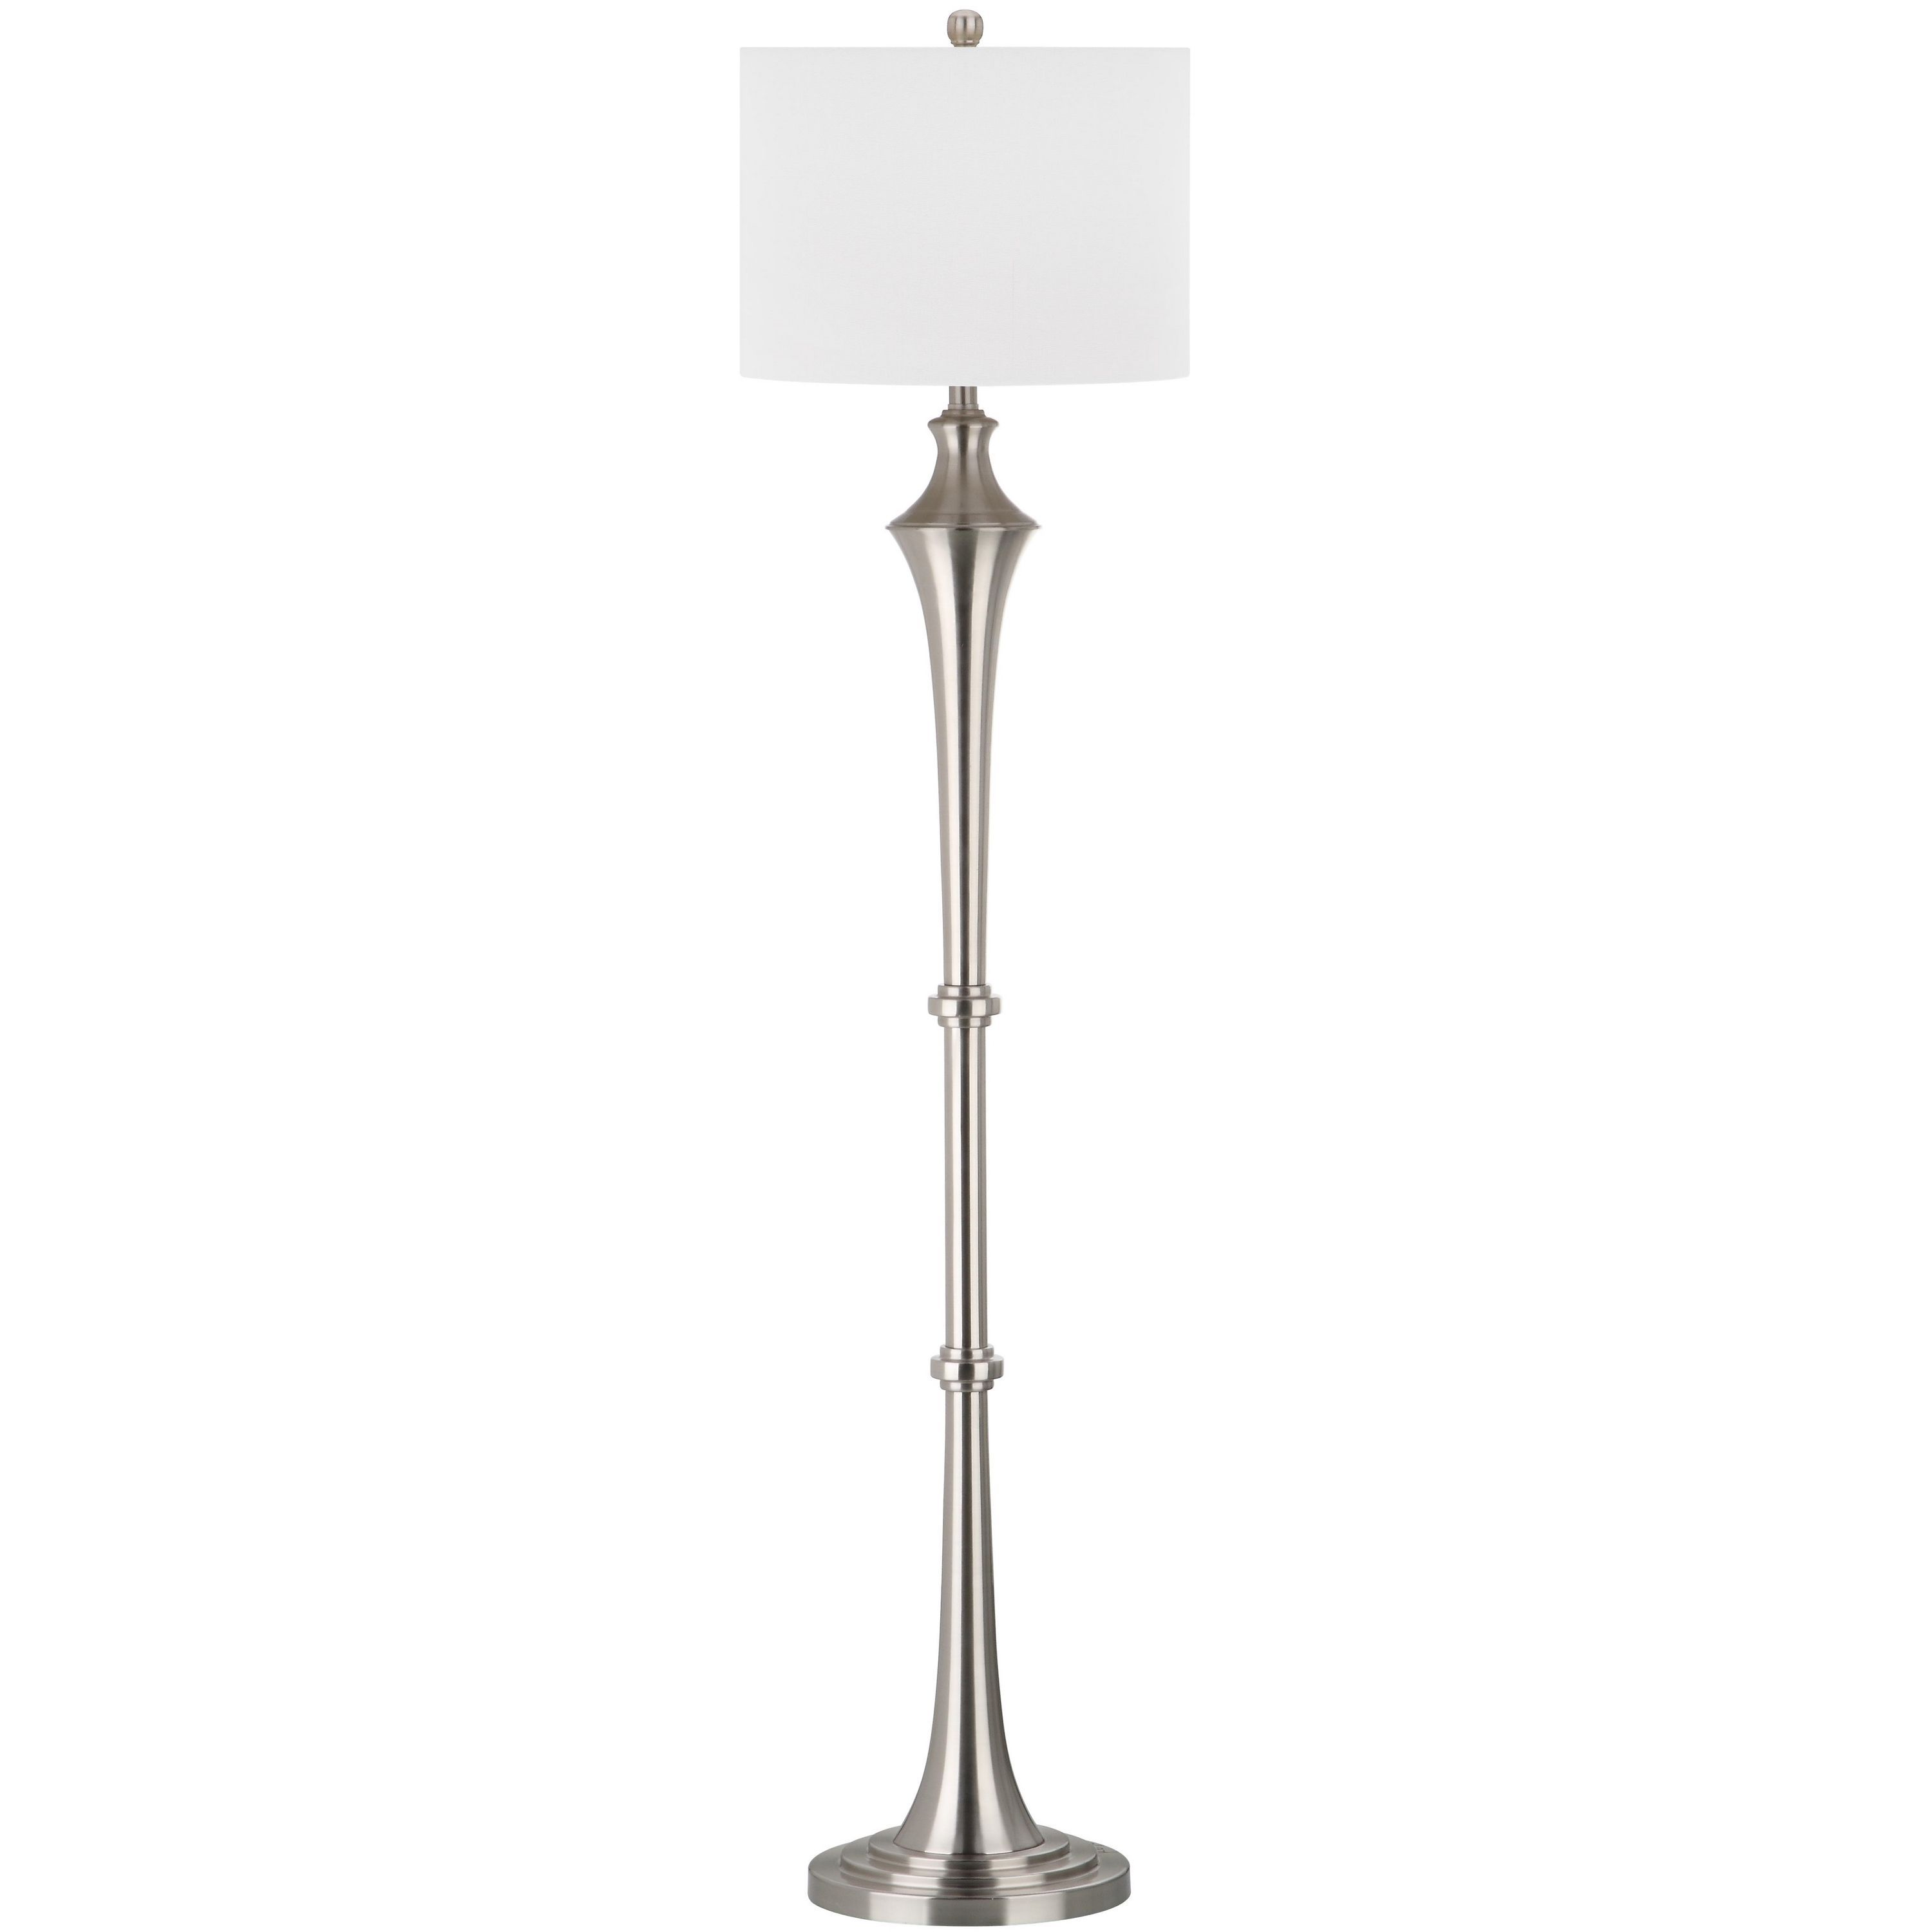 kirklands lamp exceptional menards glass under teal lamps grey floor table standing insight most